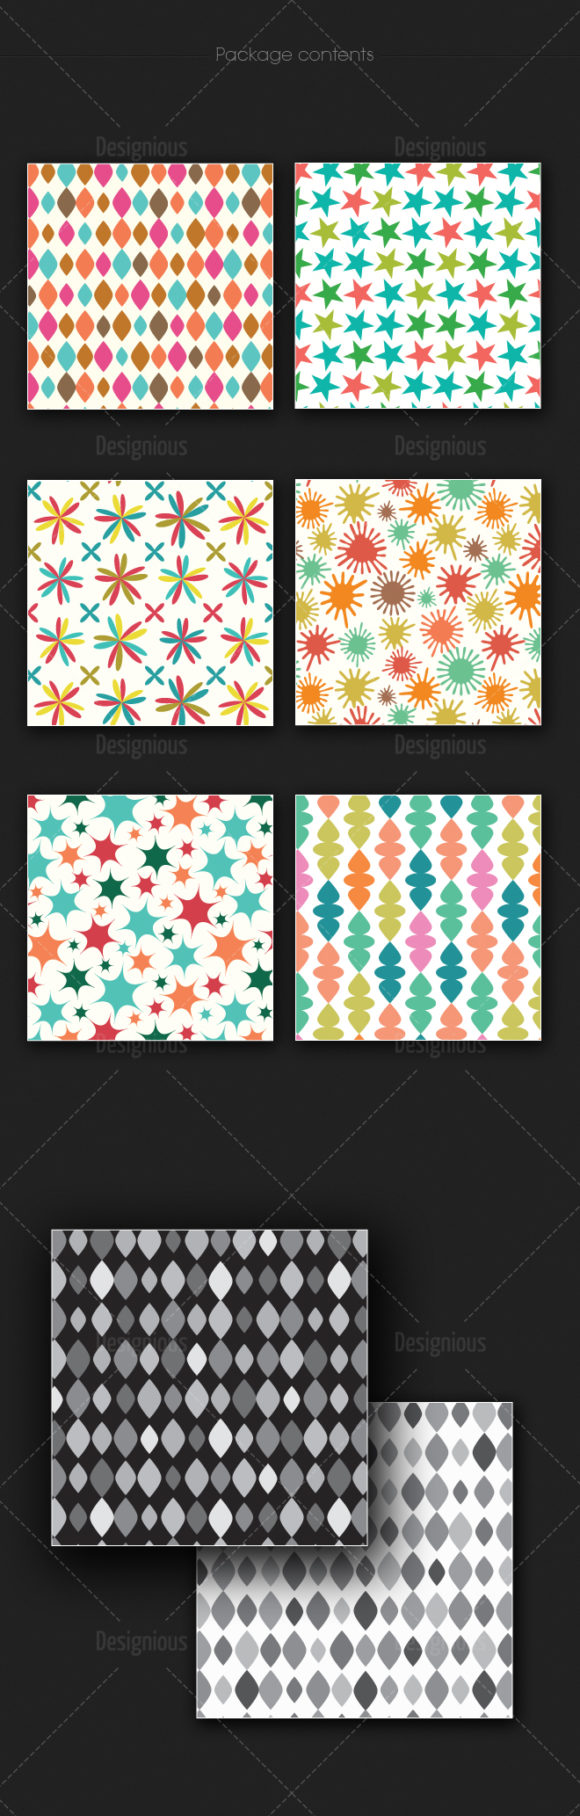 Seamless Patterns Vector Pack 167 2